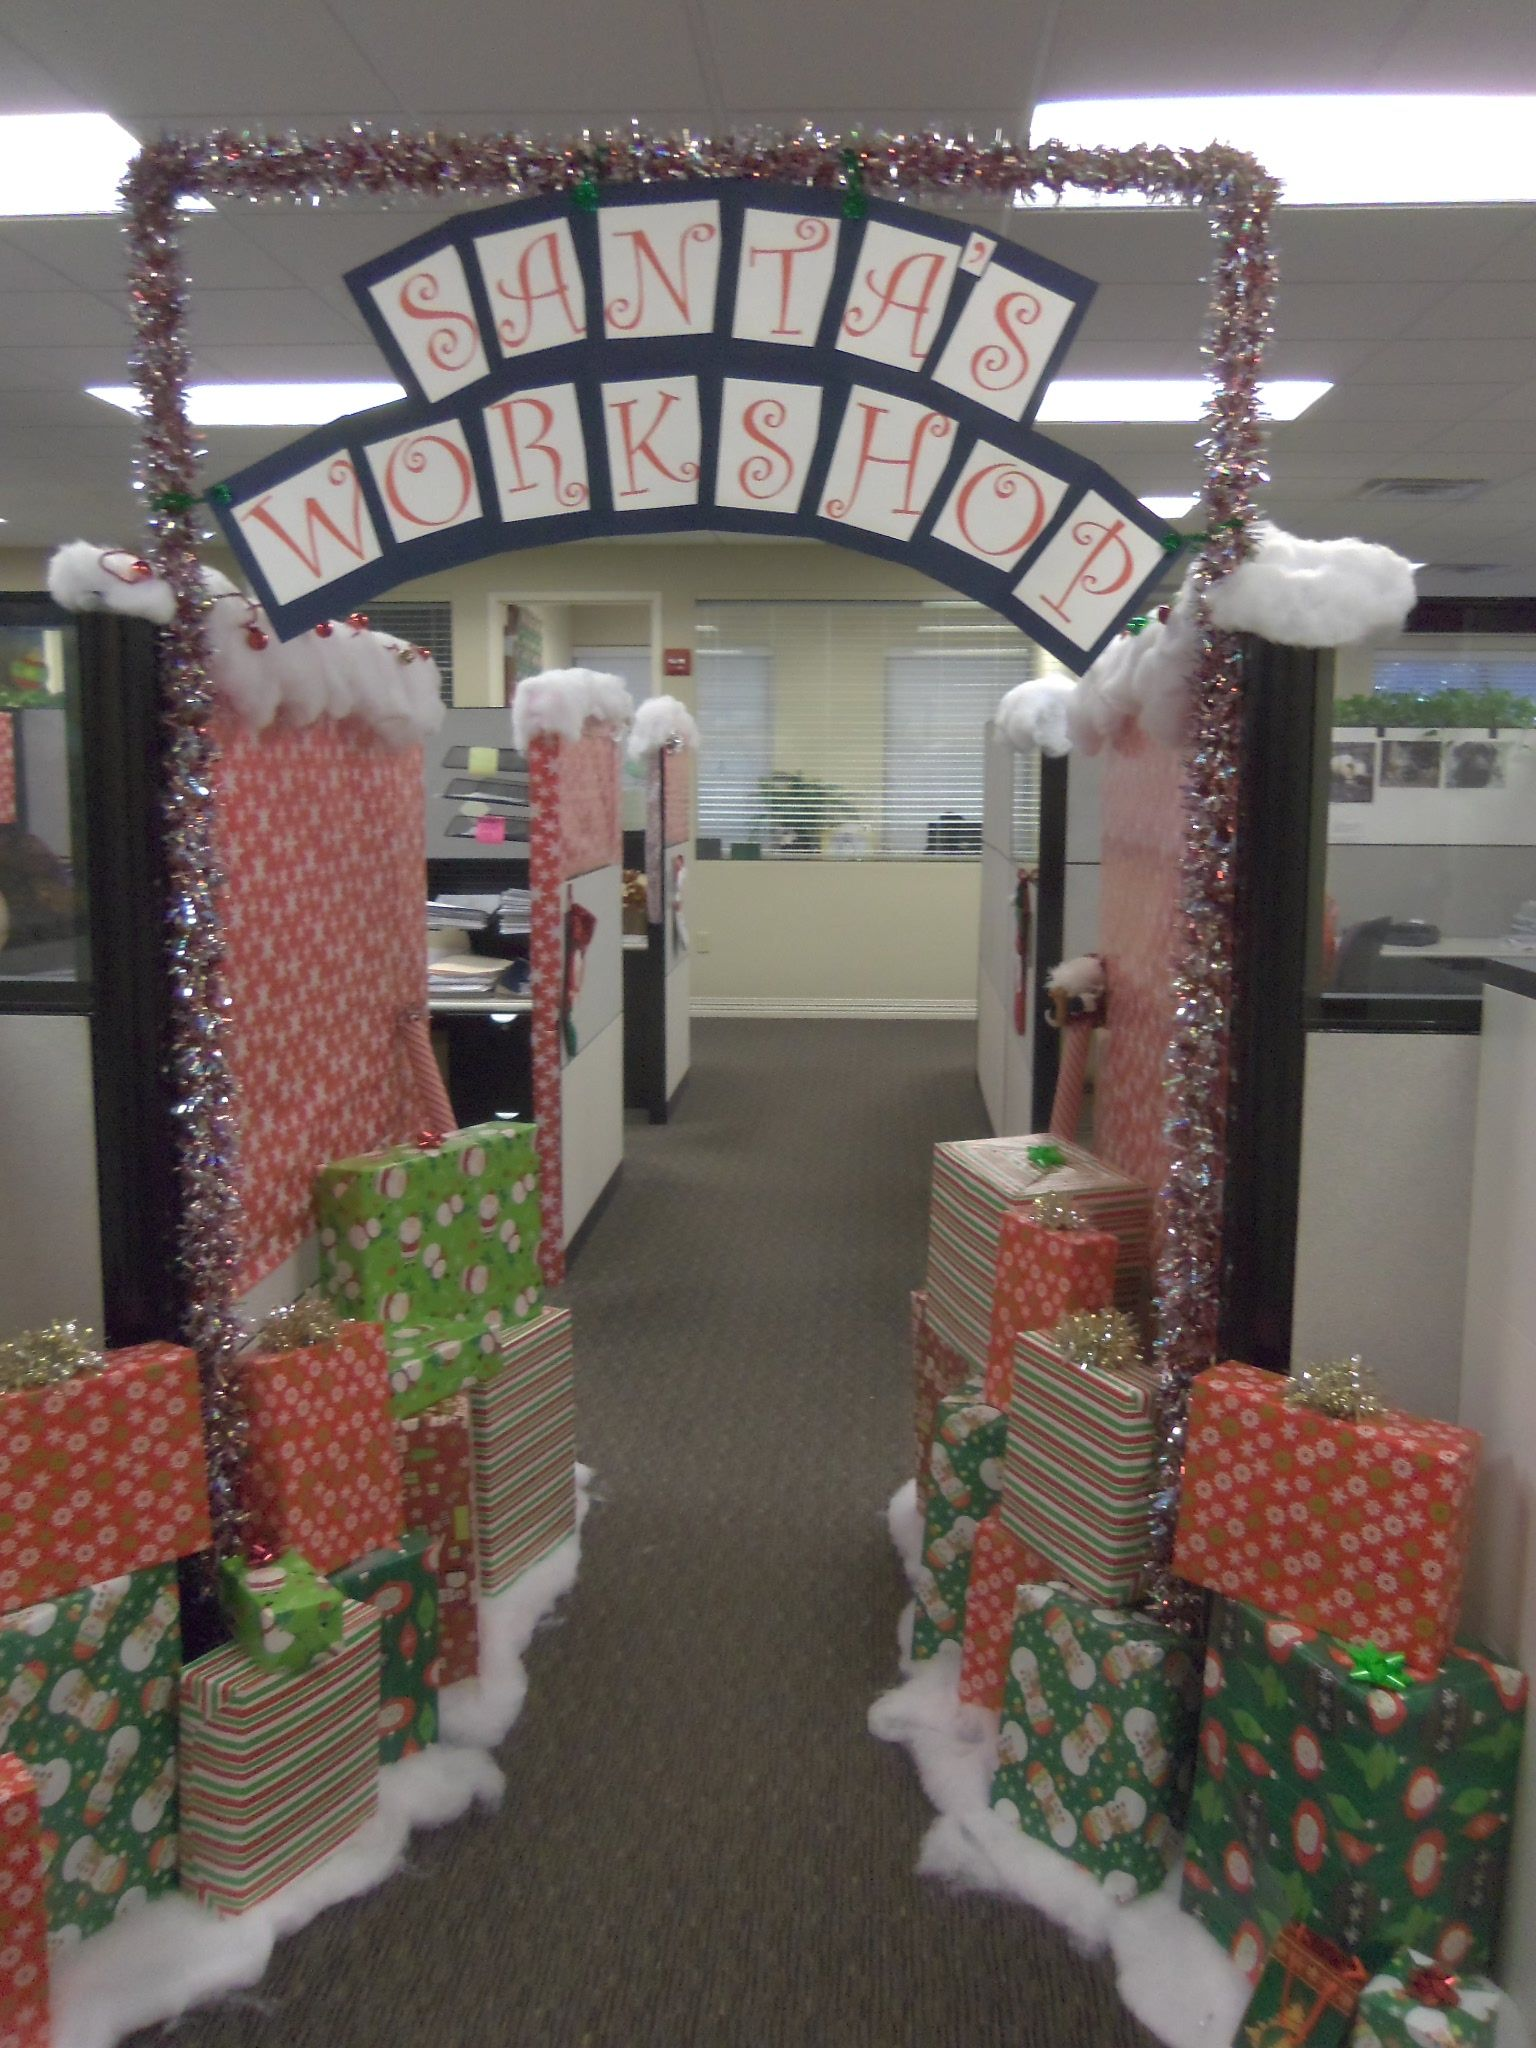 christmas decorations can boost morale at the office leland management embraces the season and encourages the holiday spirit - Office Christmas Party Decorations